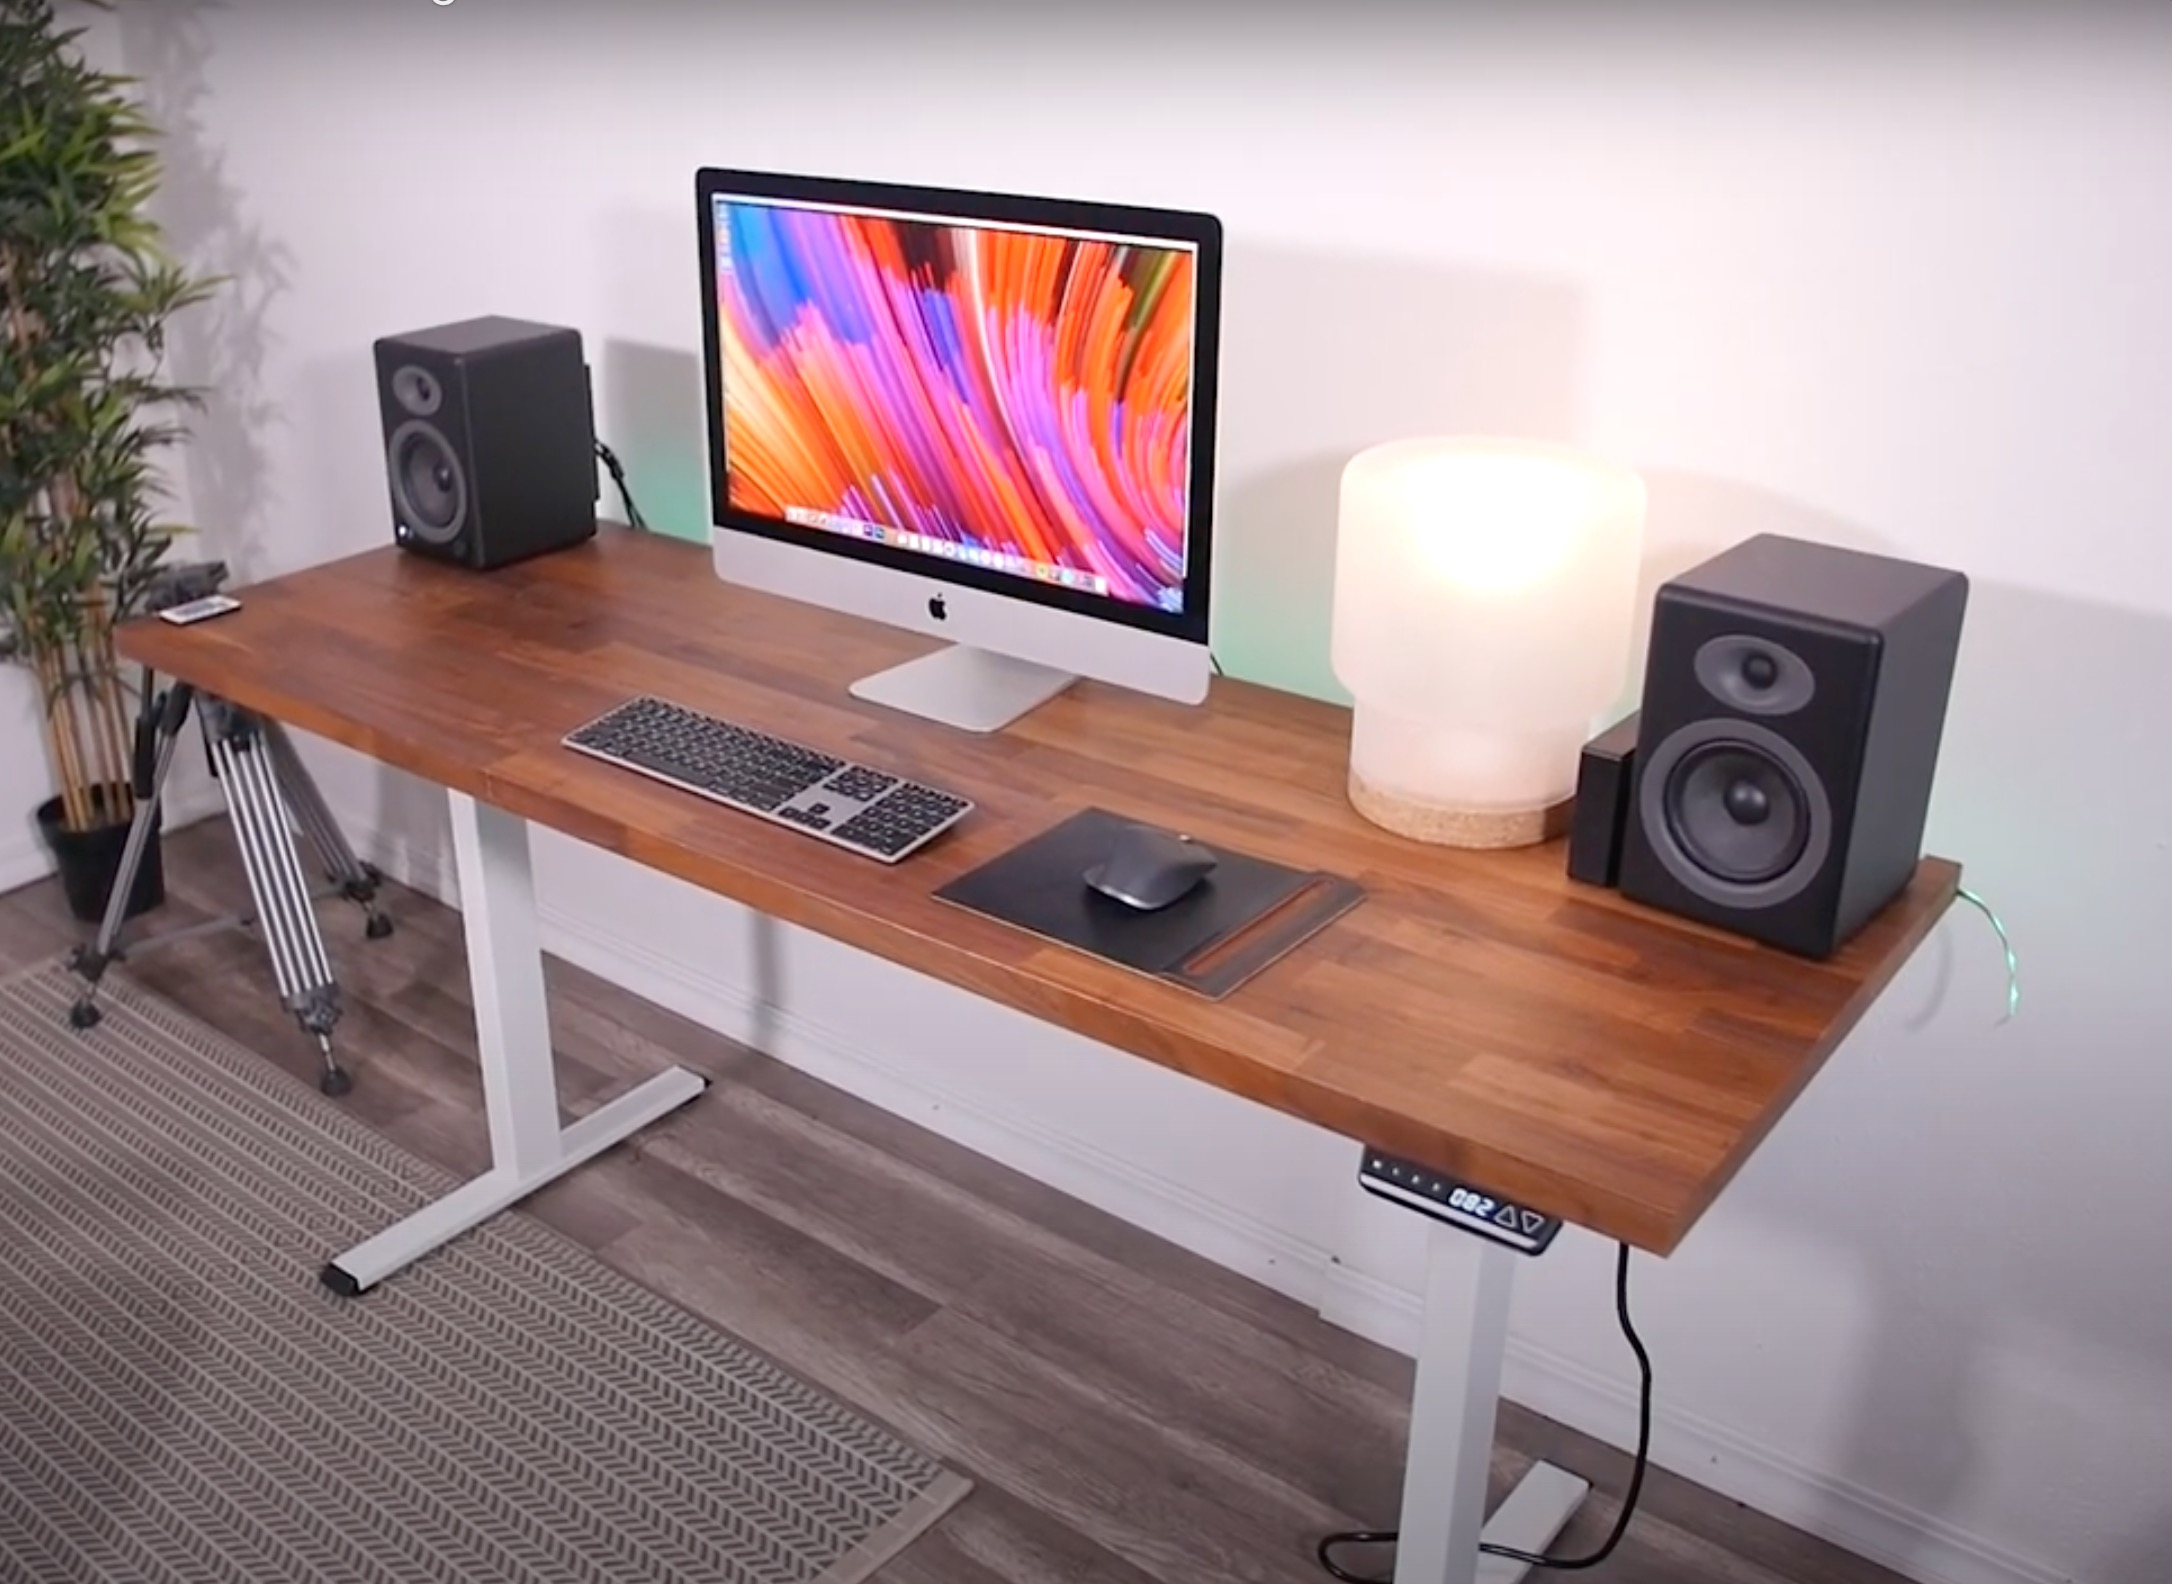 Computer on a height-adjustable desk